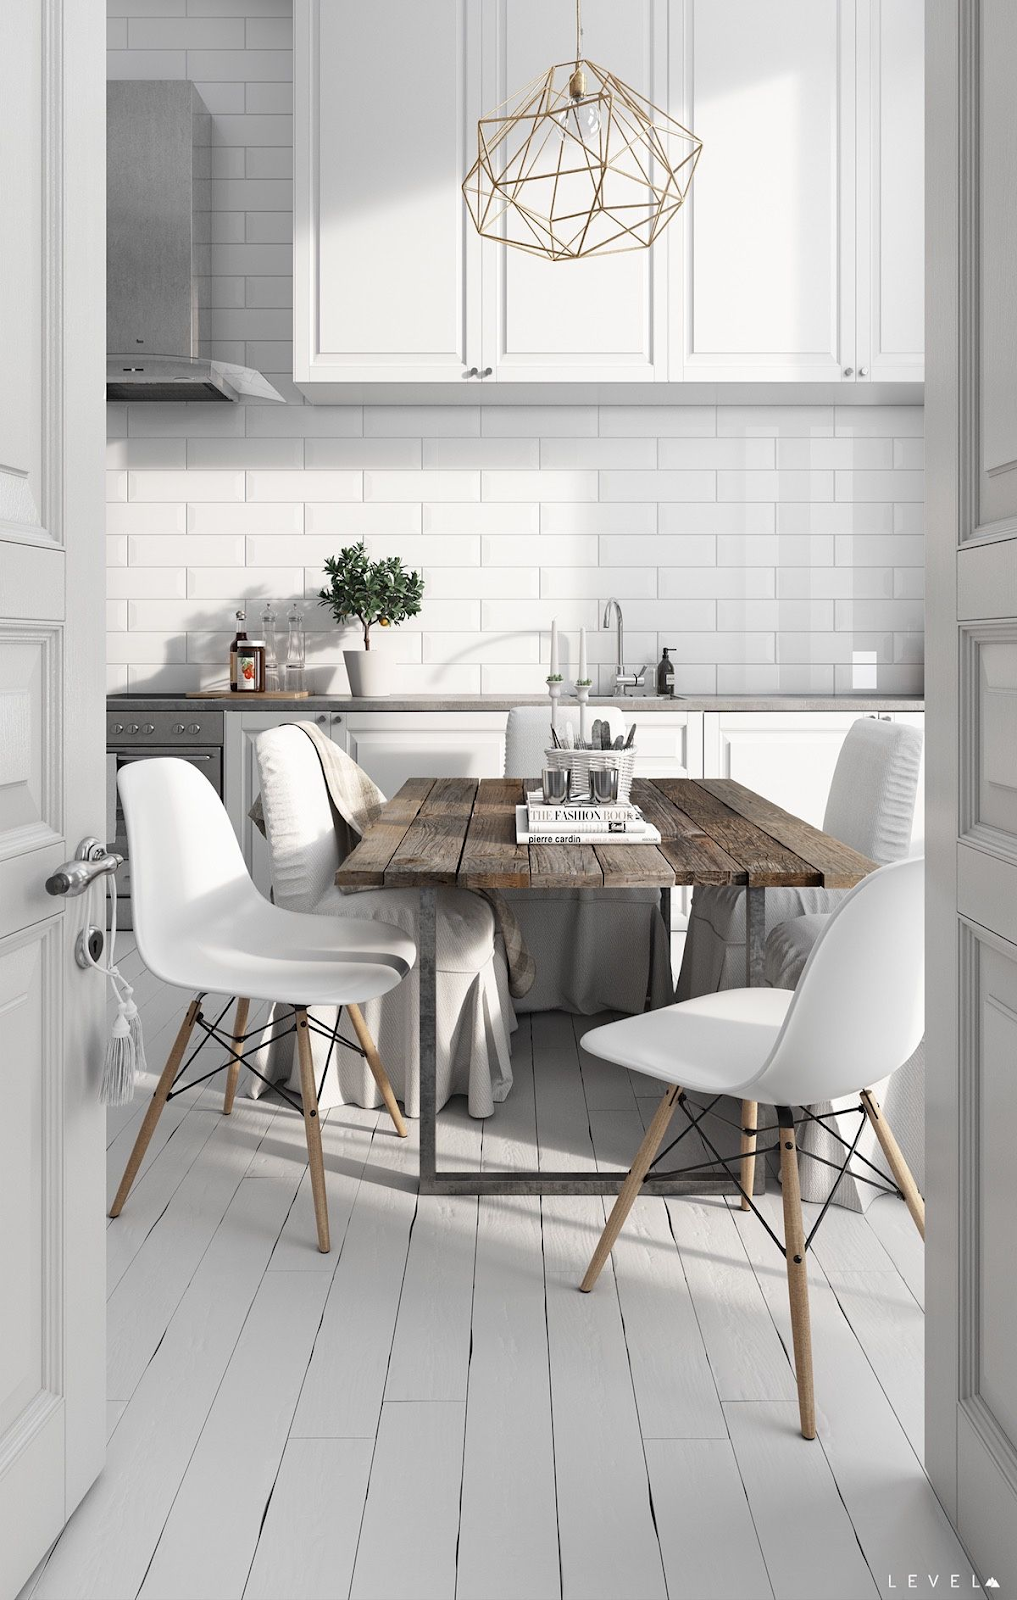 small white scandinavian kitchen with reclaimed wood table, white kitchen cabinets, white subway tile backsplash, white painted wood floors and stainless steel appliances